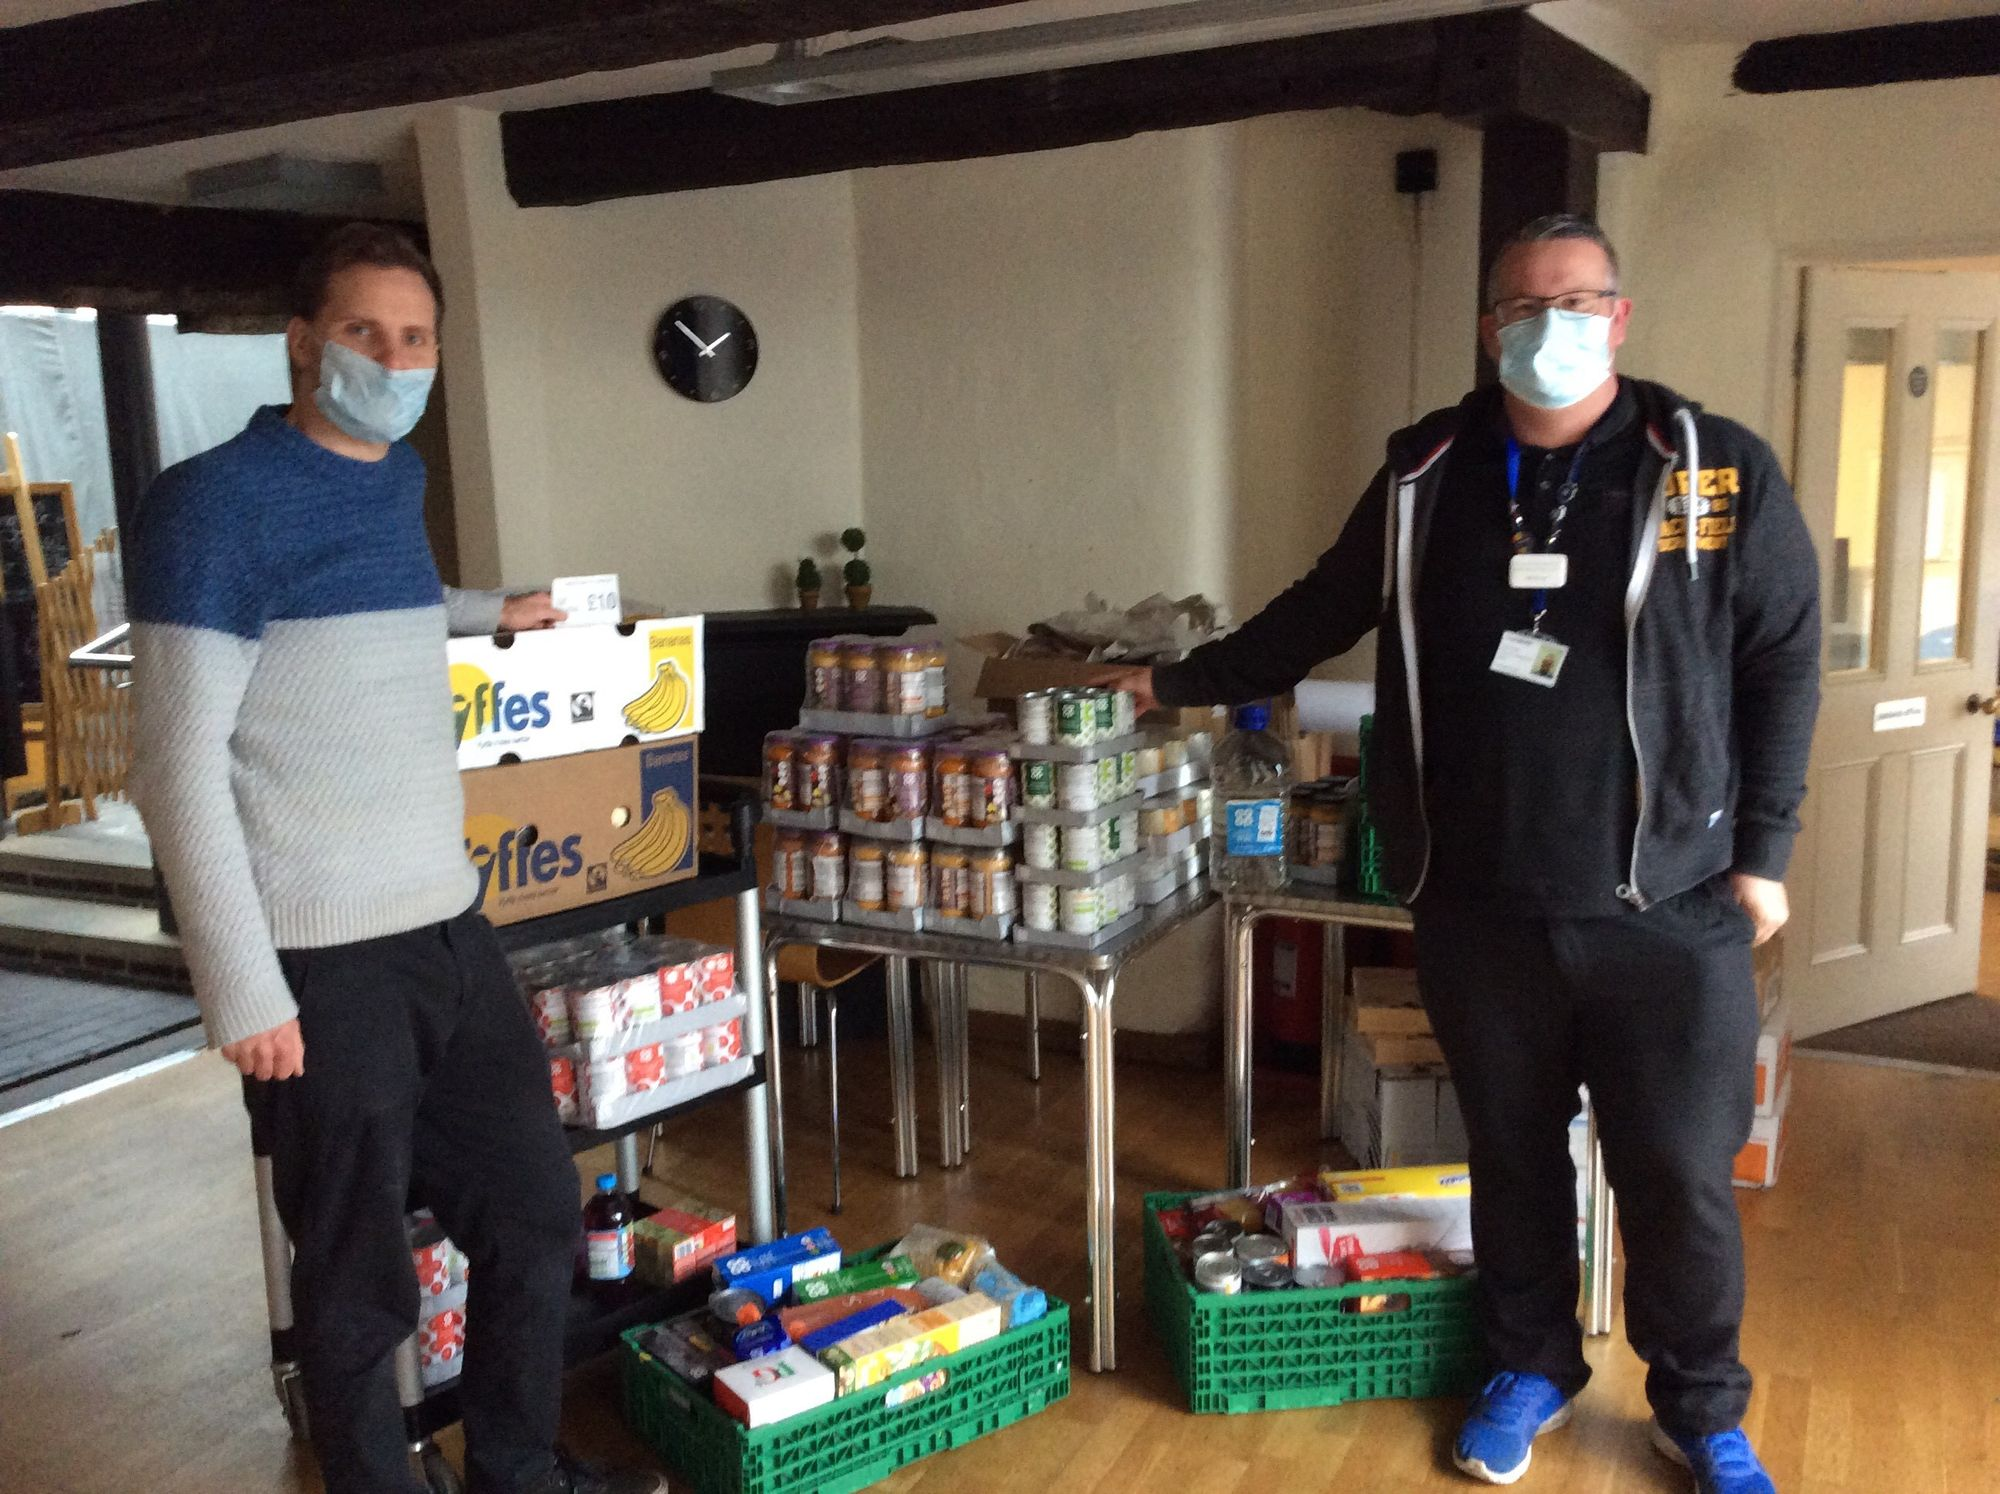 Membership and Community Council helps support local Foodbank